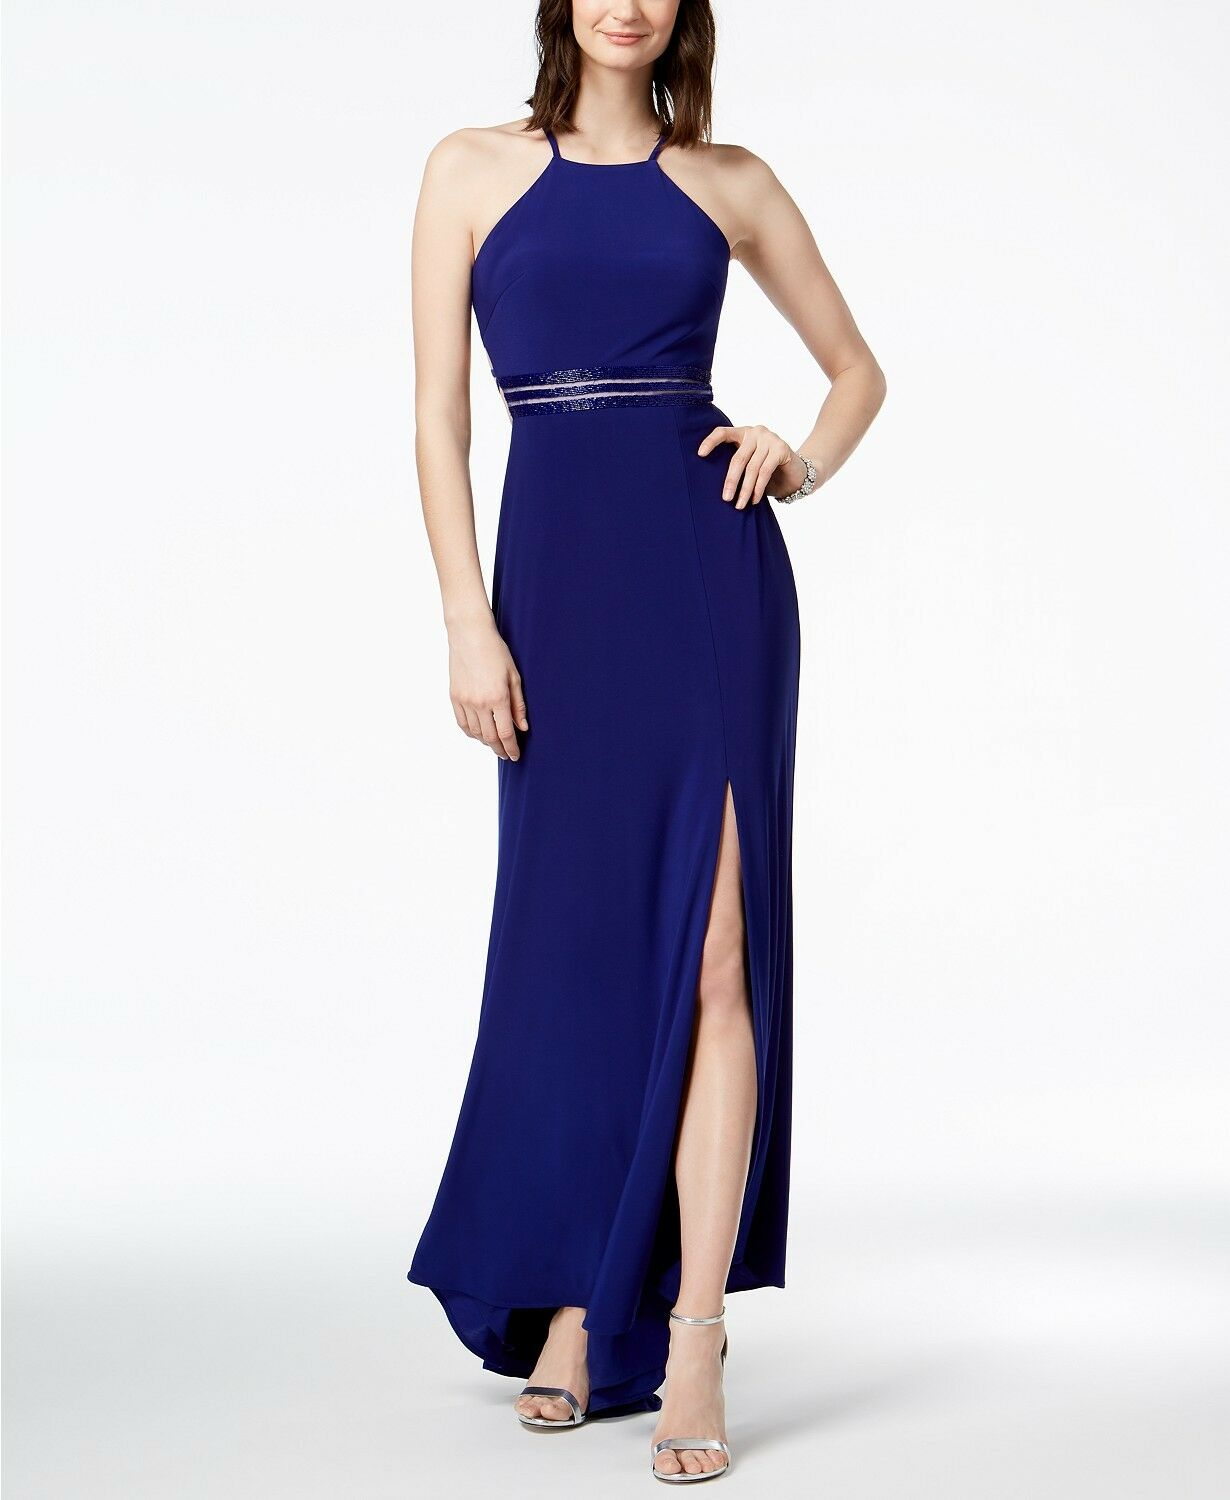 229 NIGHTWAY Womens blueE Strappy Beaded LONG GOWN A-LINE SLIT DRESS SIZE 14